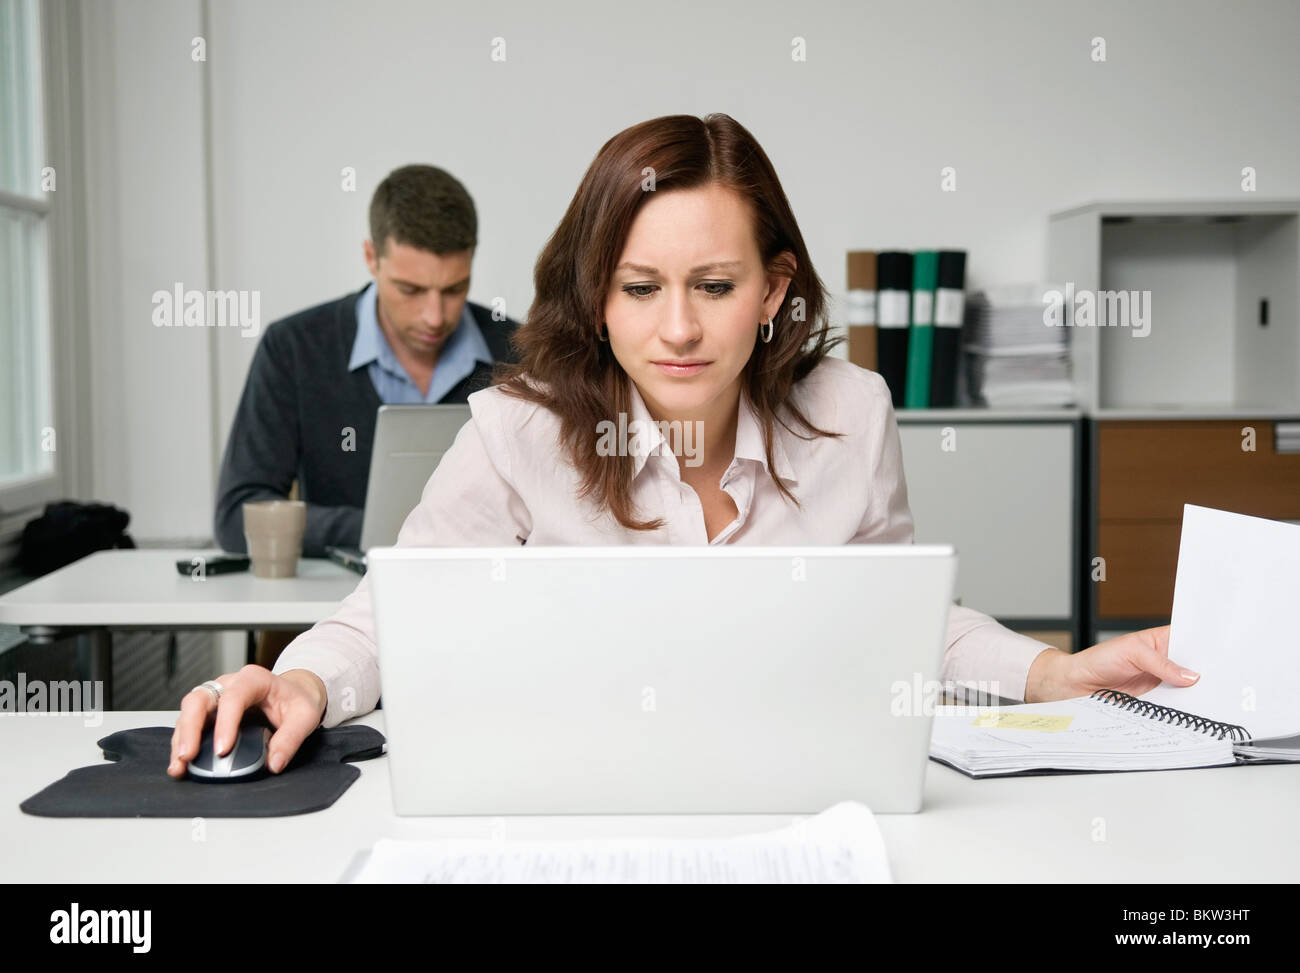 Concentrated coworker at office - Stock Image